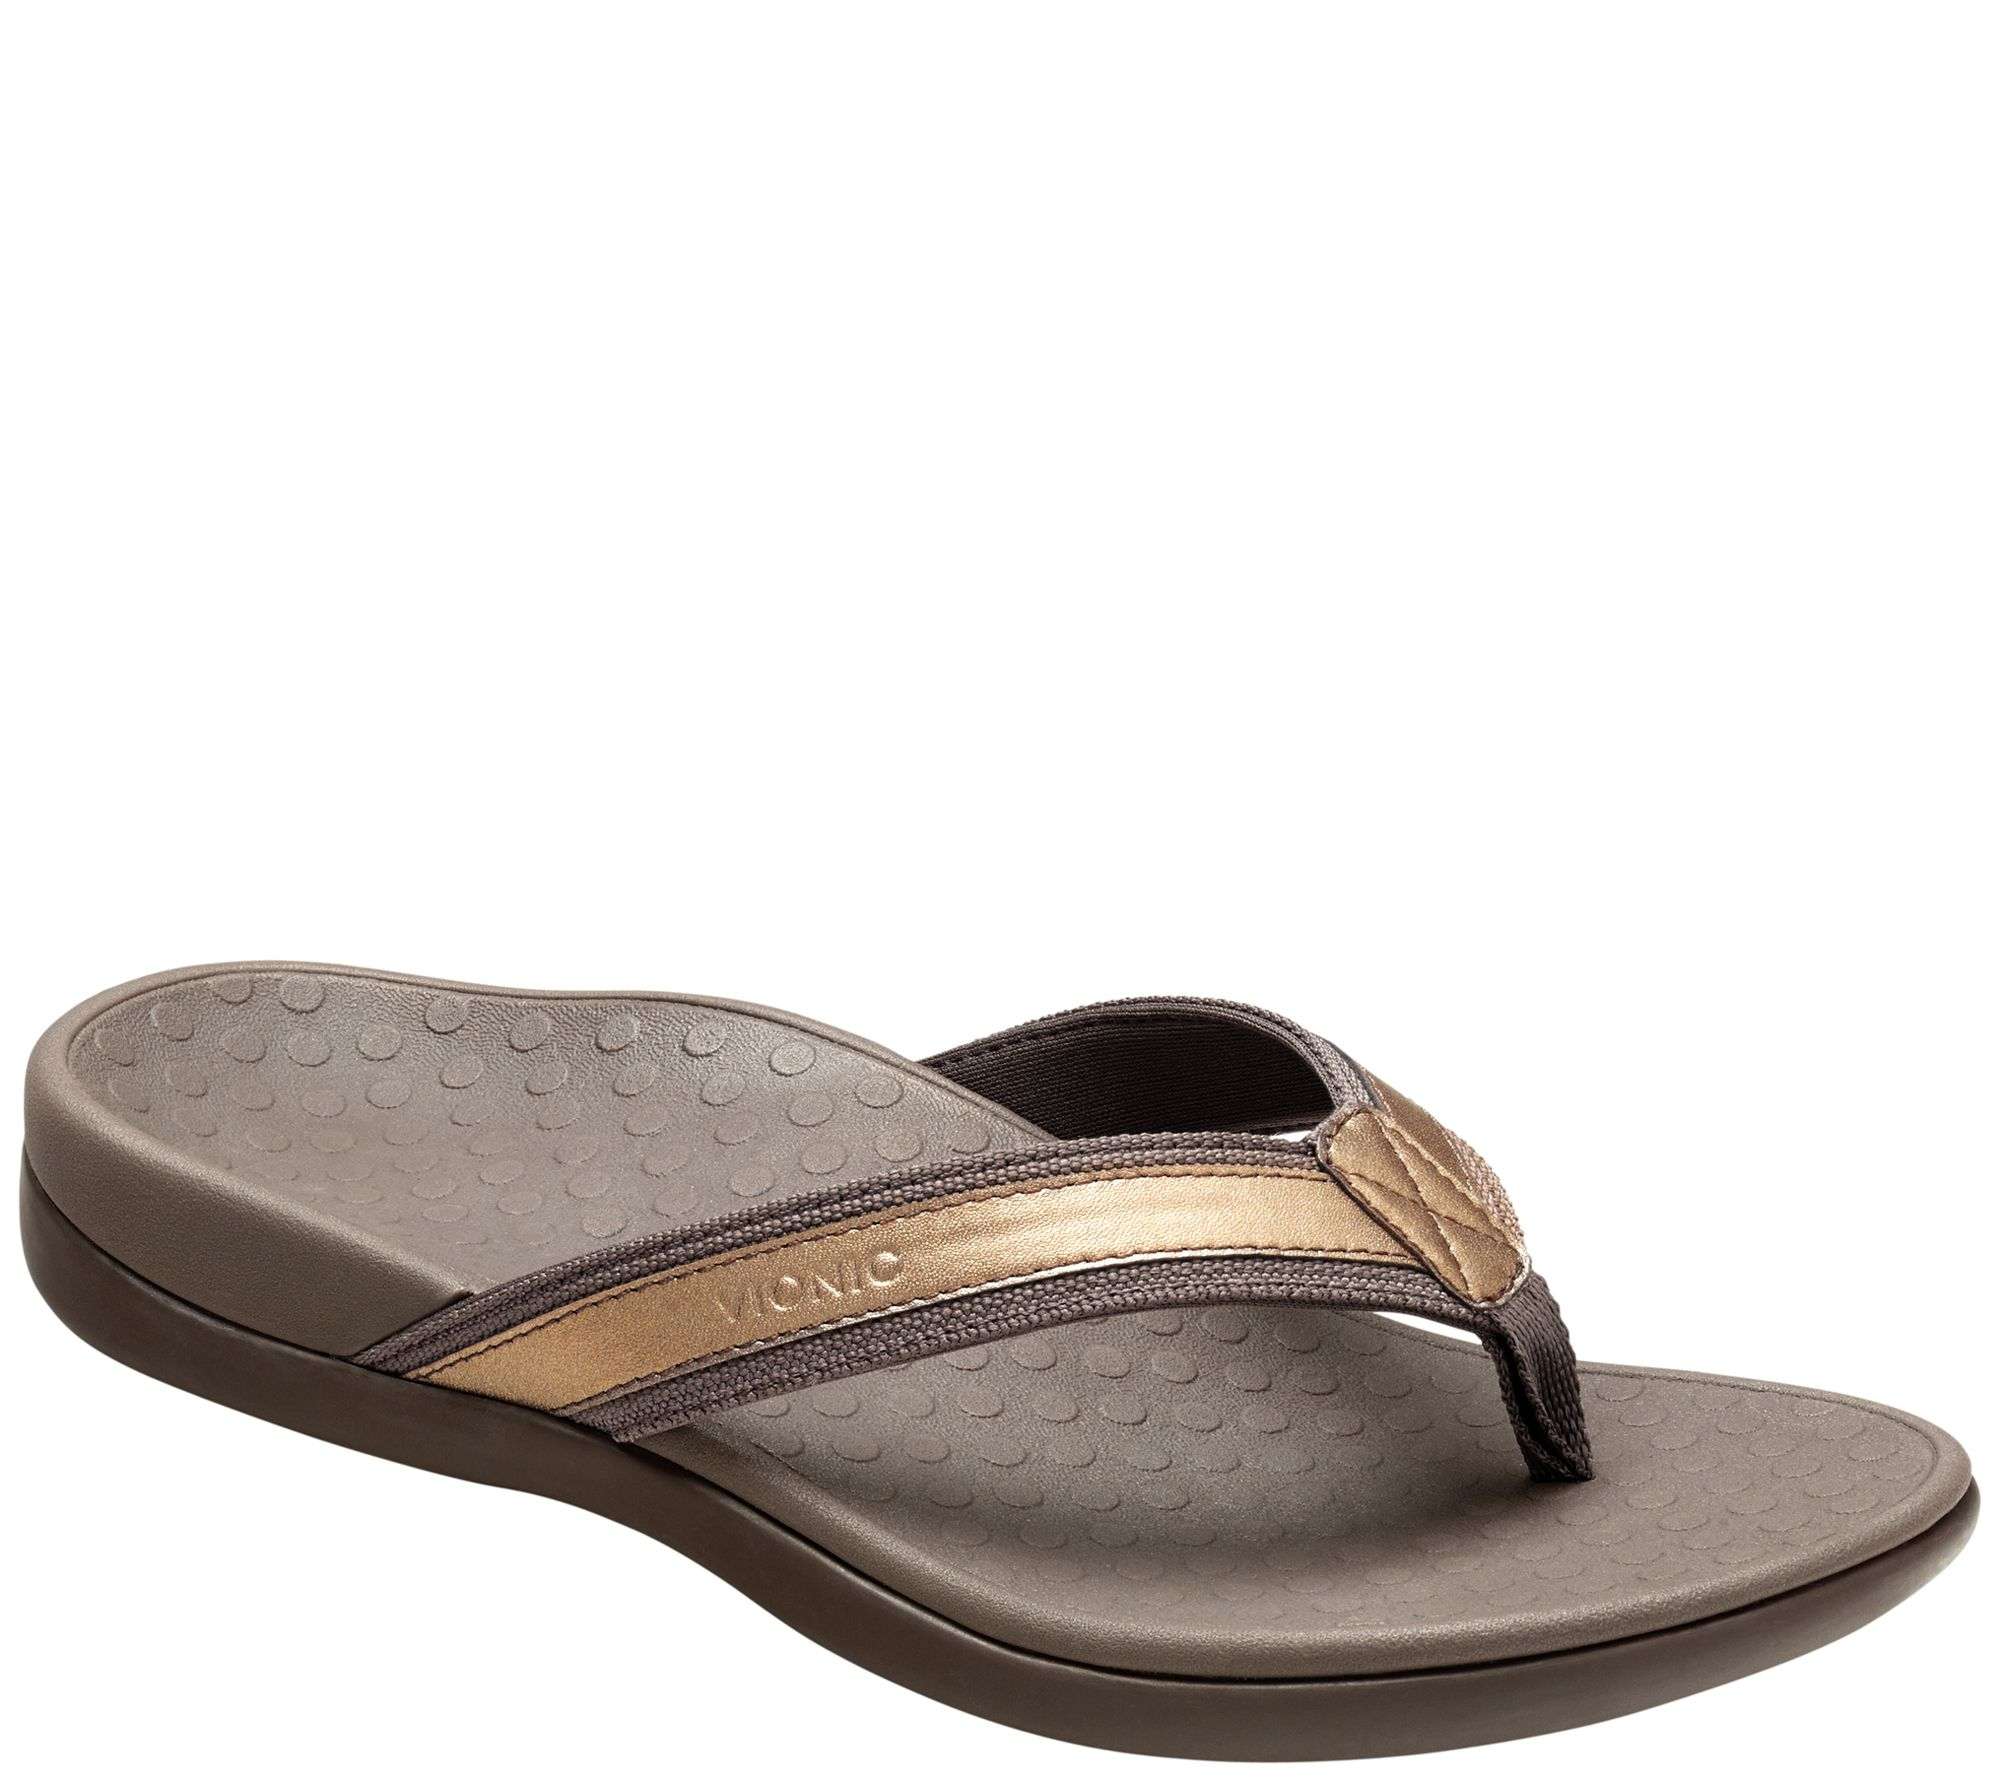 b191452571d52 Vionic Leather Thong Sandals - Tide II - Page 1 — QVC.com